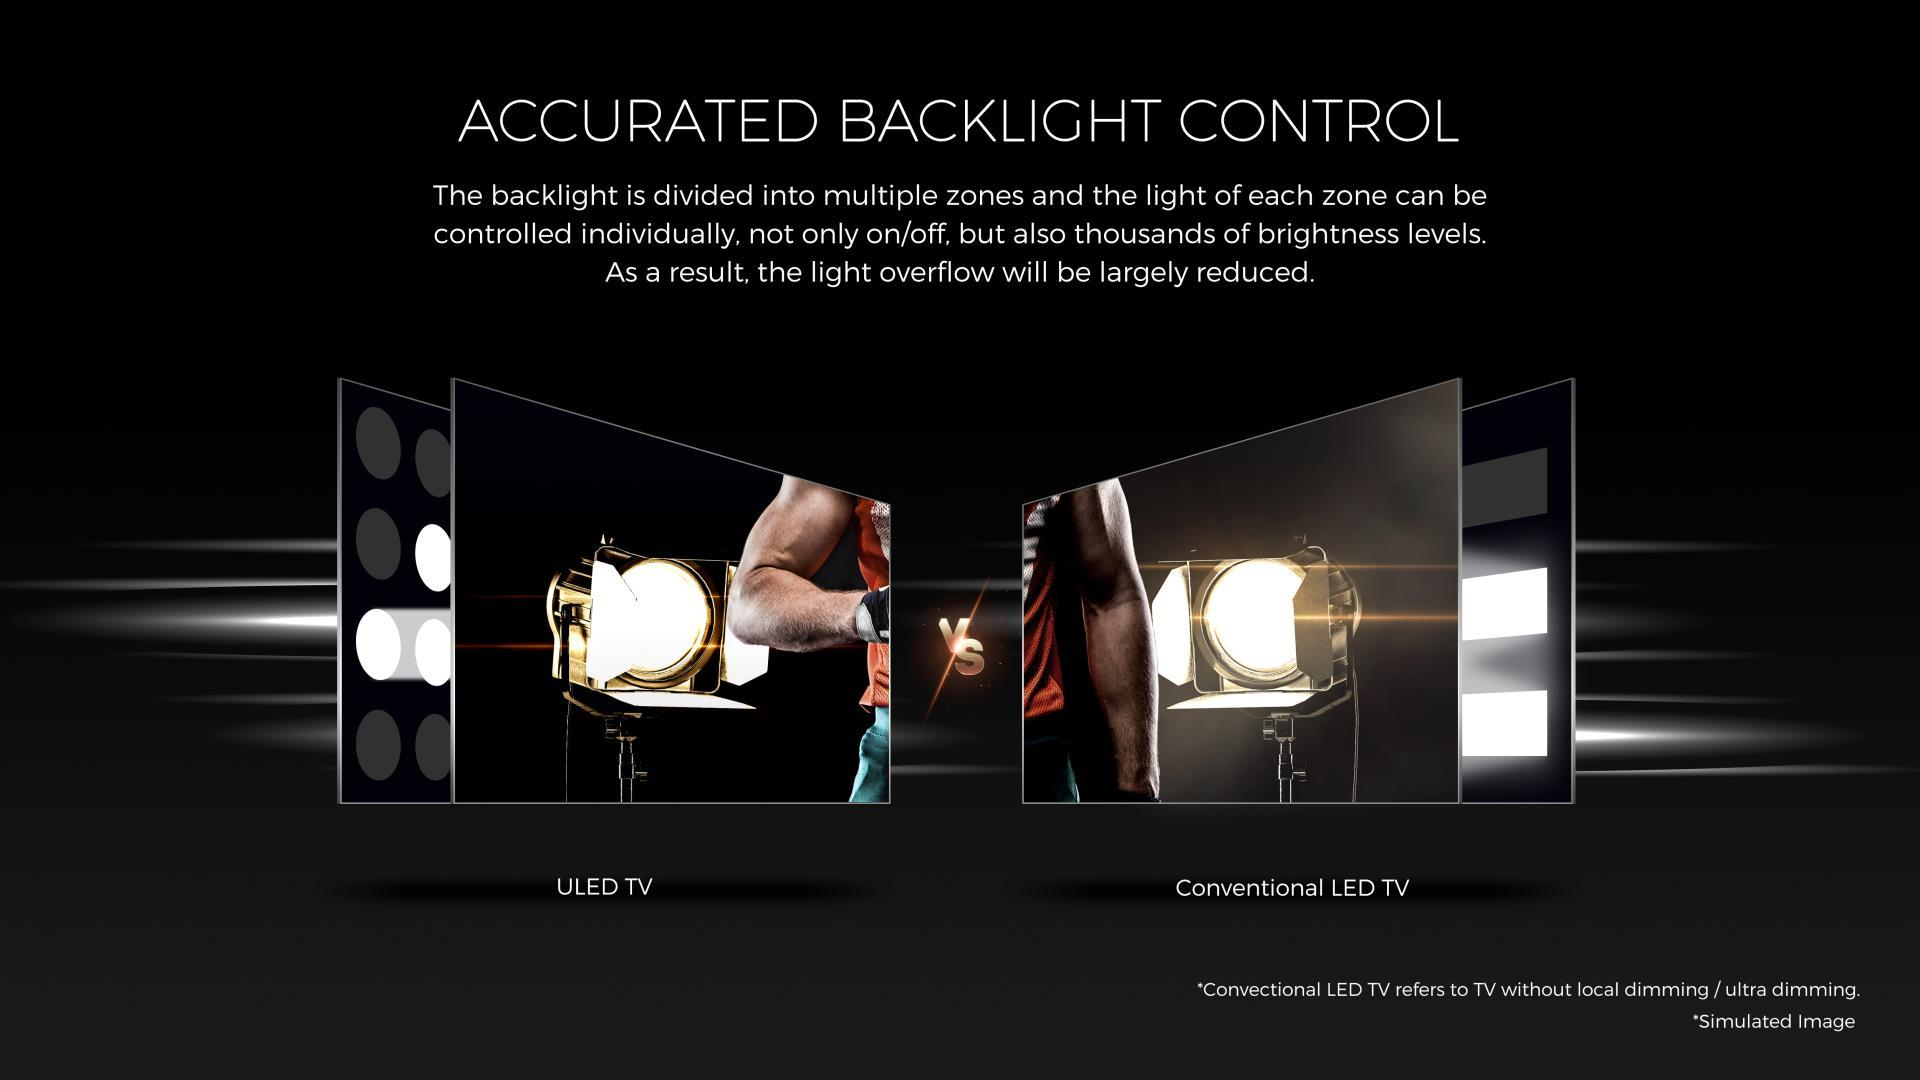 4.2 accurated backlight control